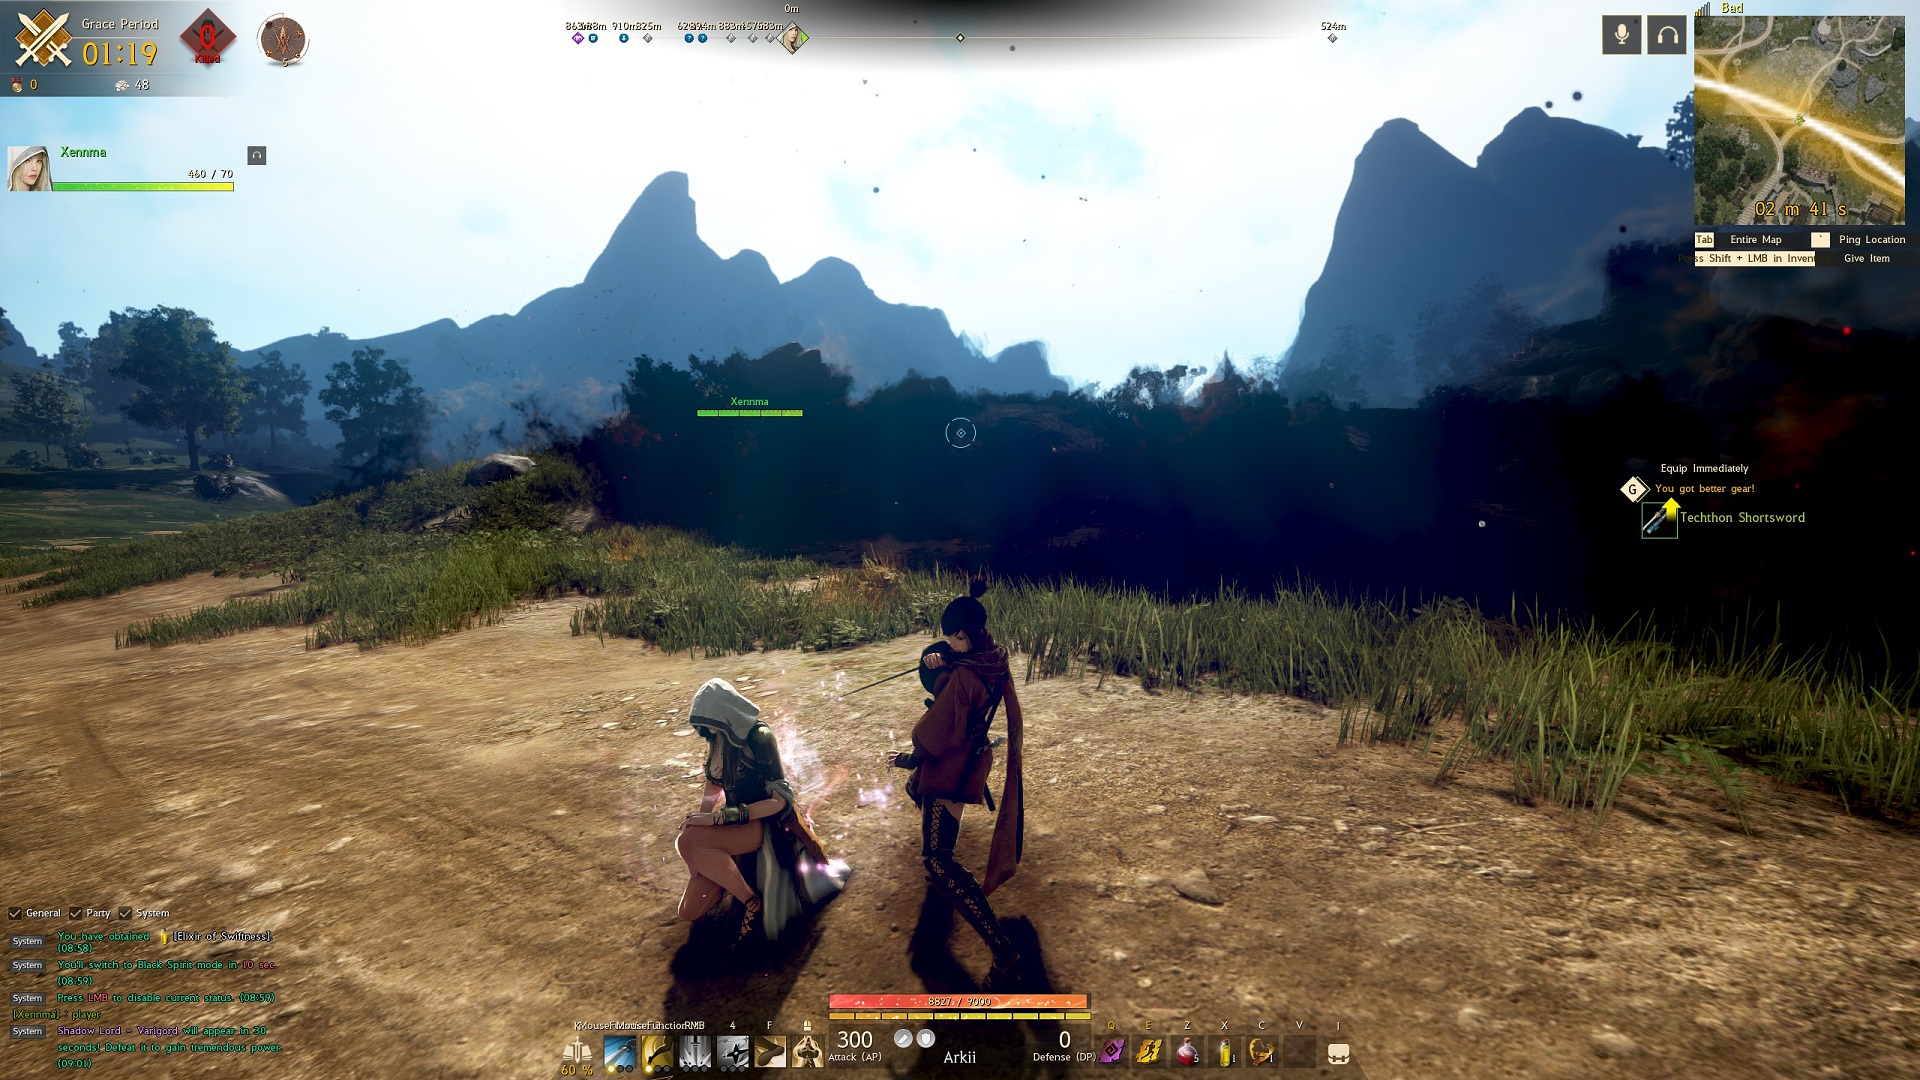 Screenshot from teammate, Arkii, point of view